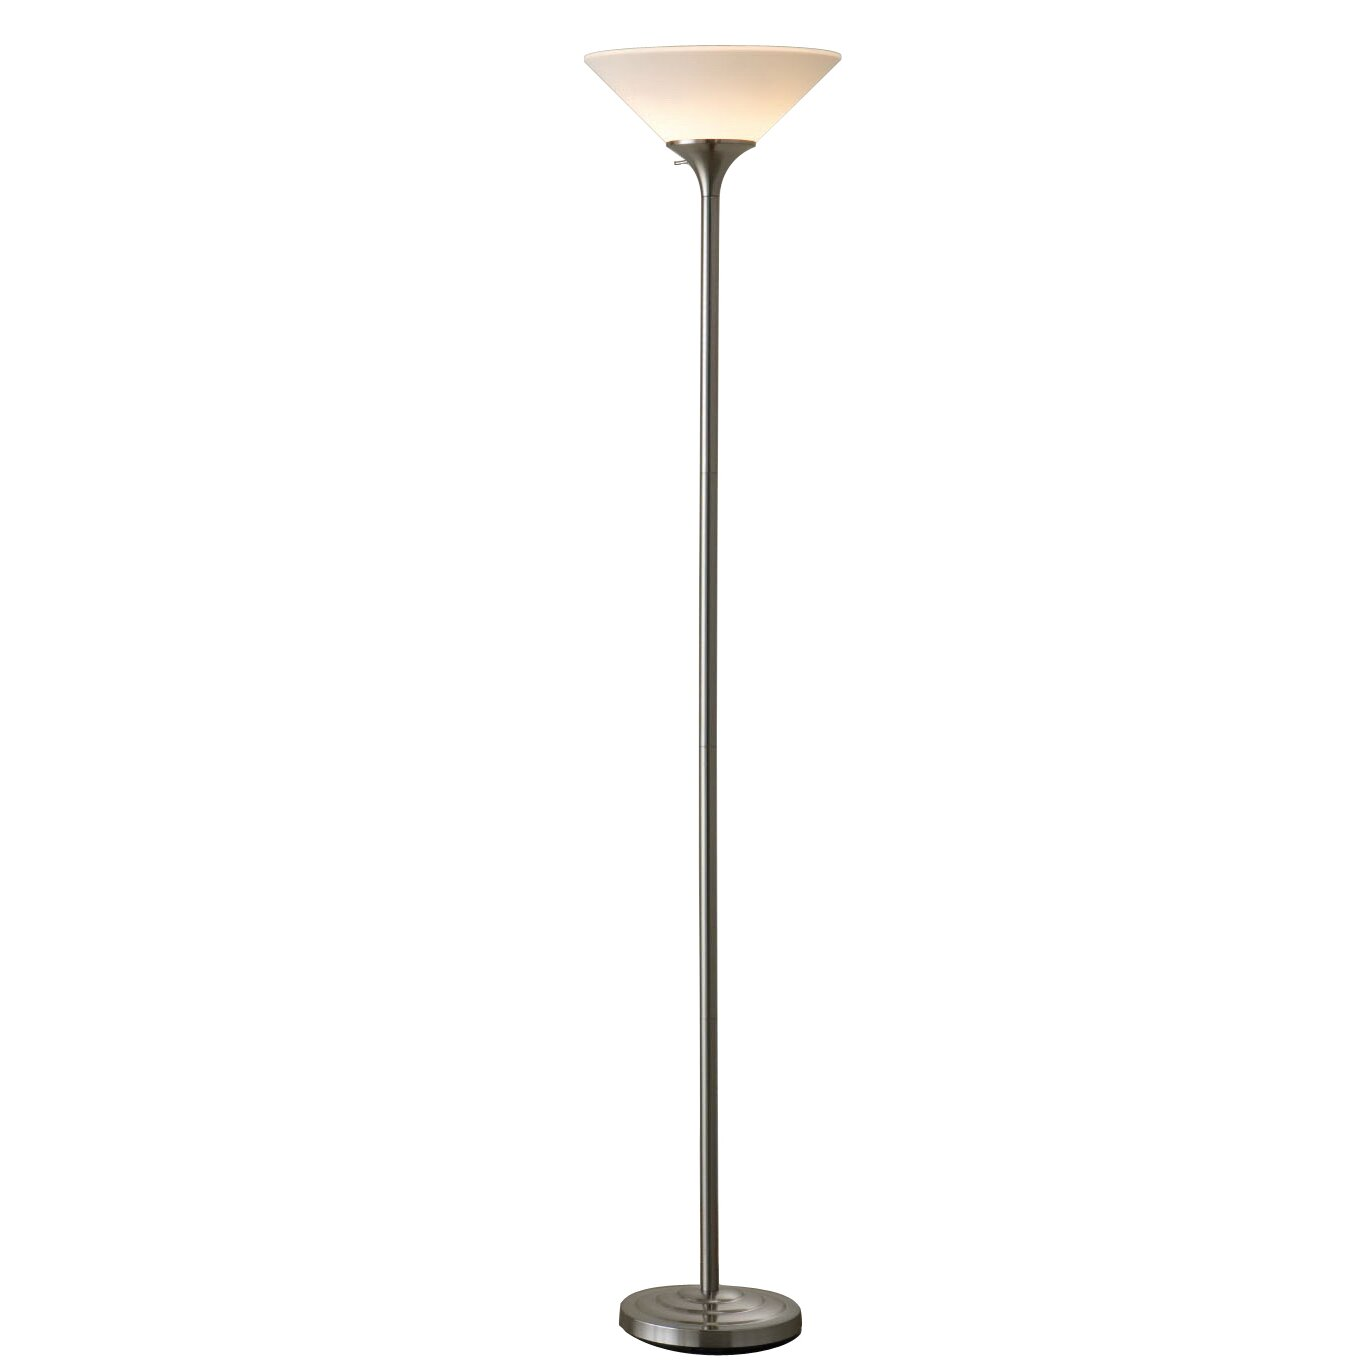 Eldshult table lamp ikea fabric shade gives a diffused and decorative - Andover Mills Reg Christian 71 Quot Torchiere Floor Lamp Andover Mills Reg